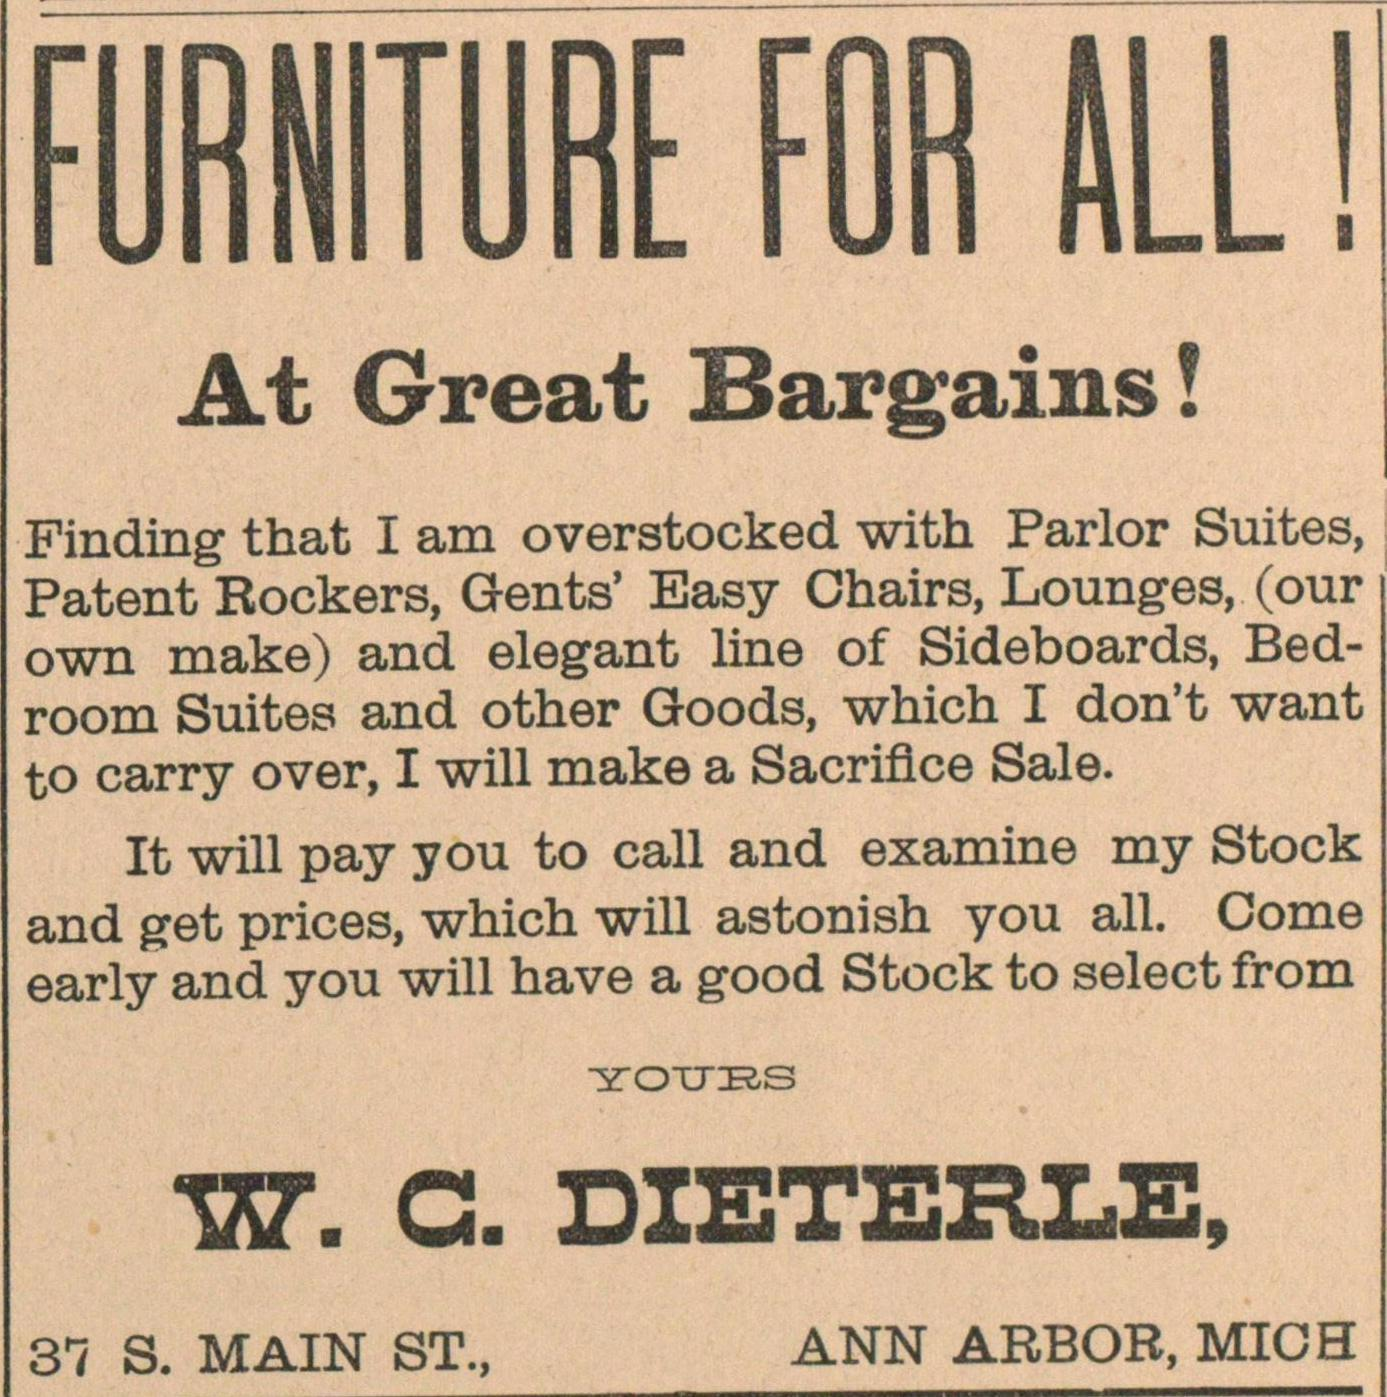 Furniture For All! image